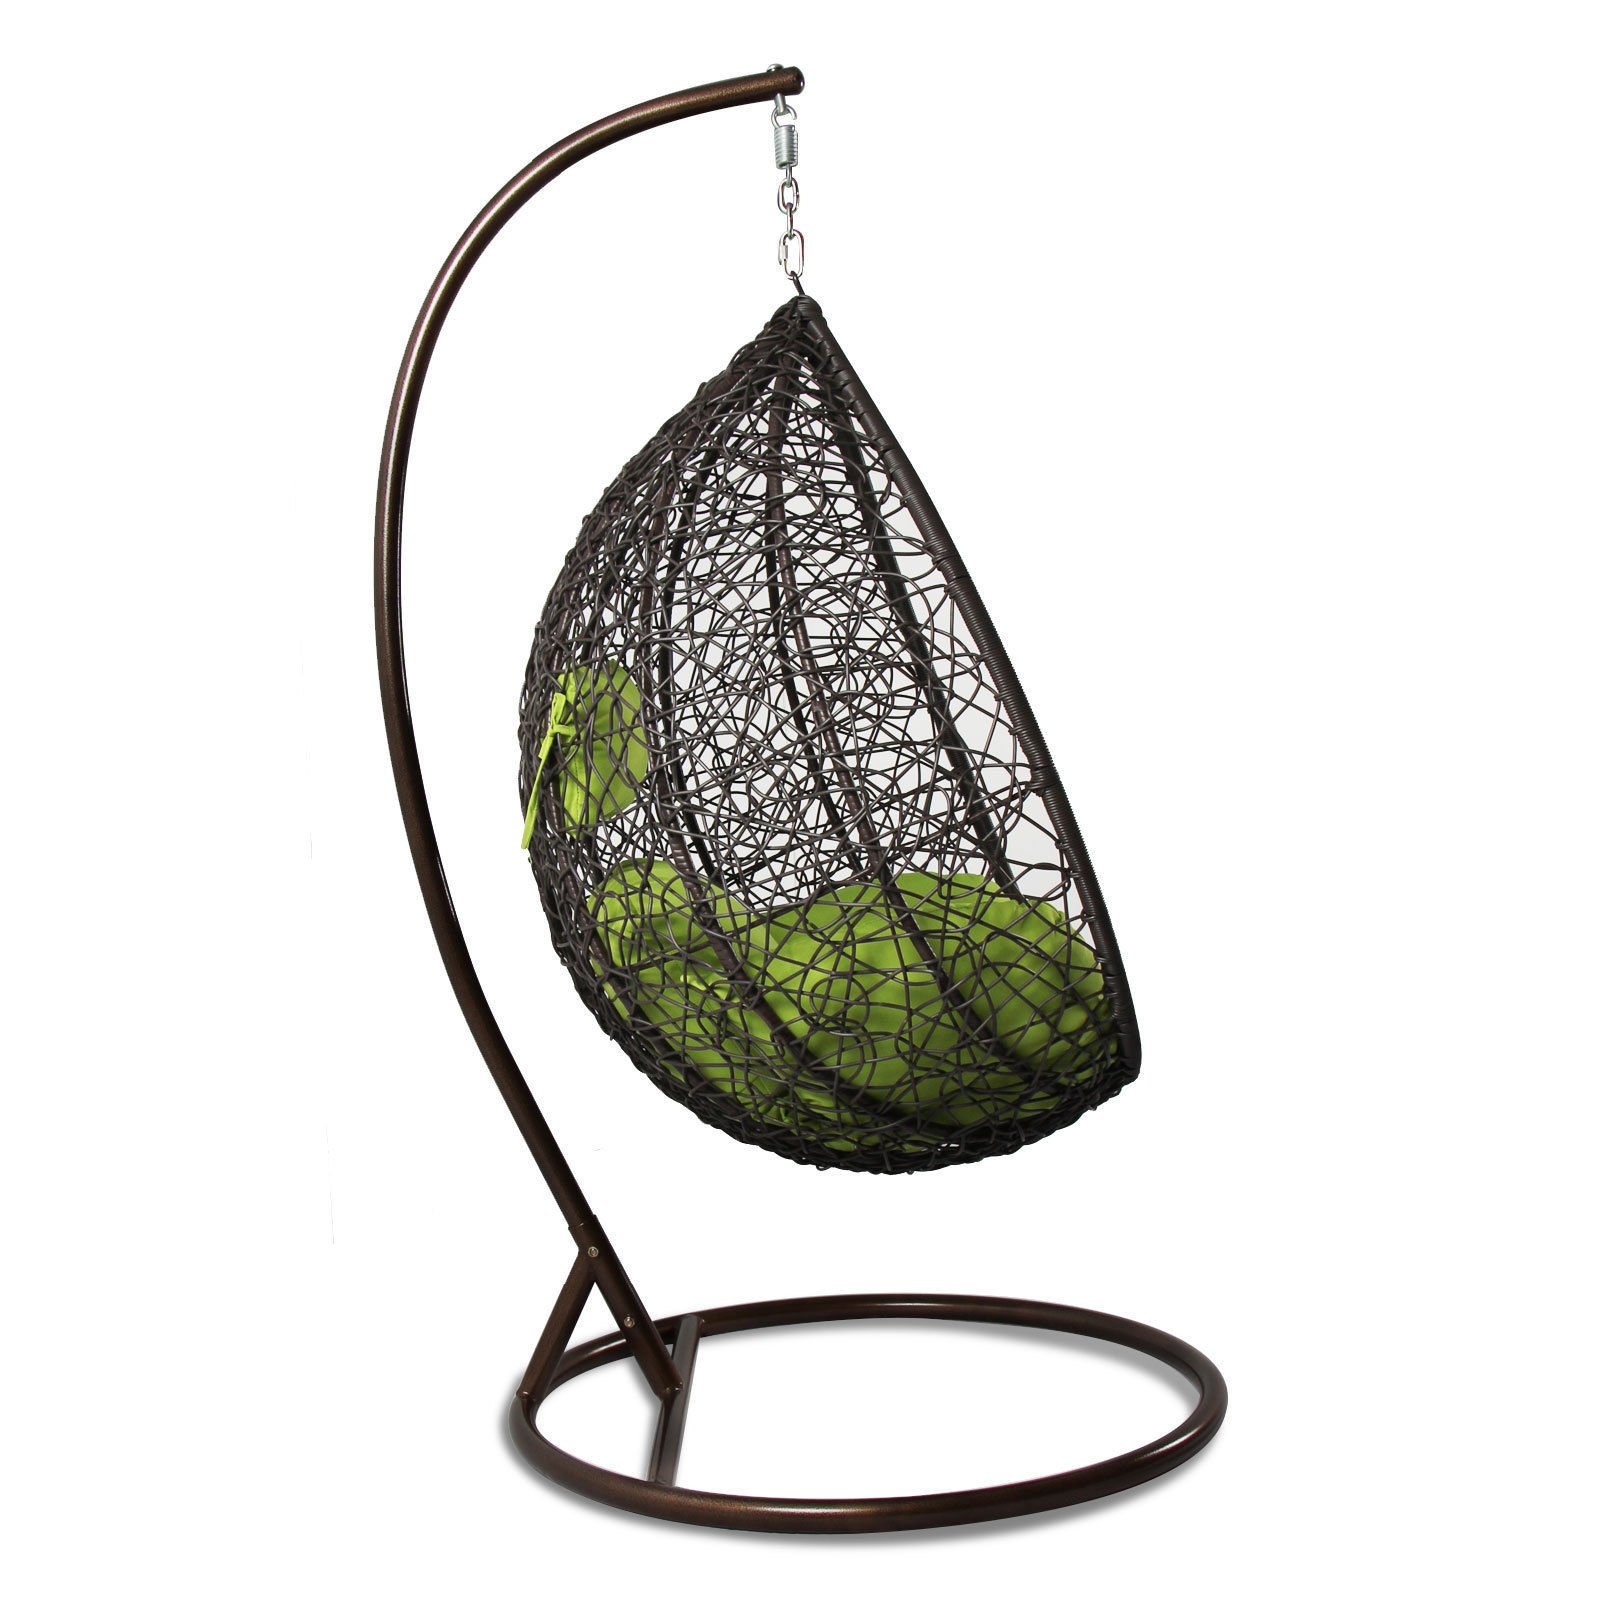 Outdoor Egg Chair Swing Hanging Hammock Proch Swing Chair Free Cover Outdoor Egg